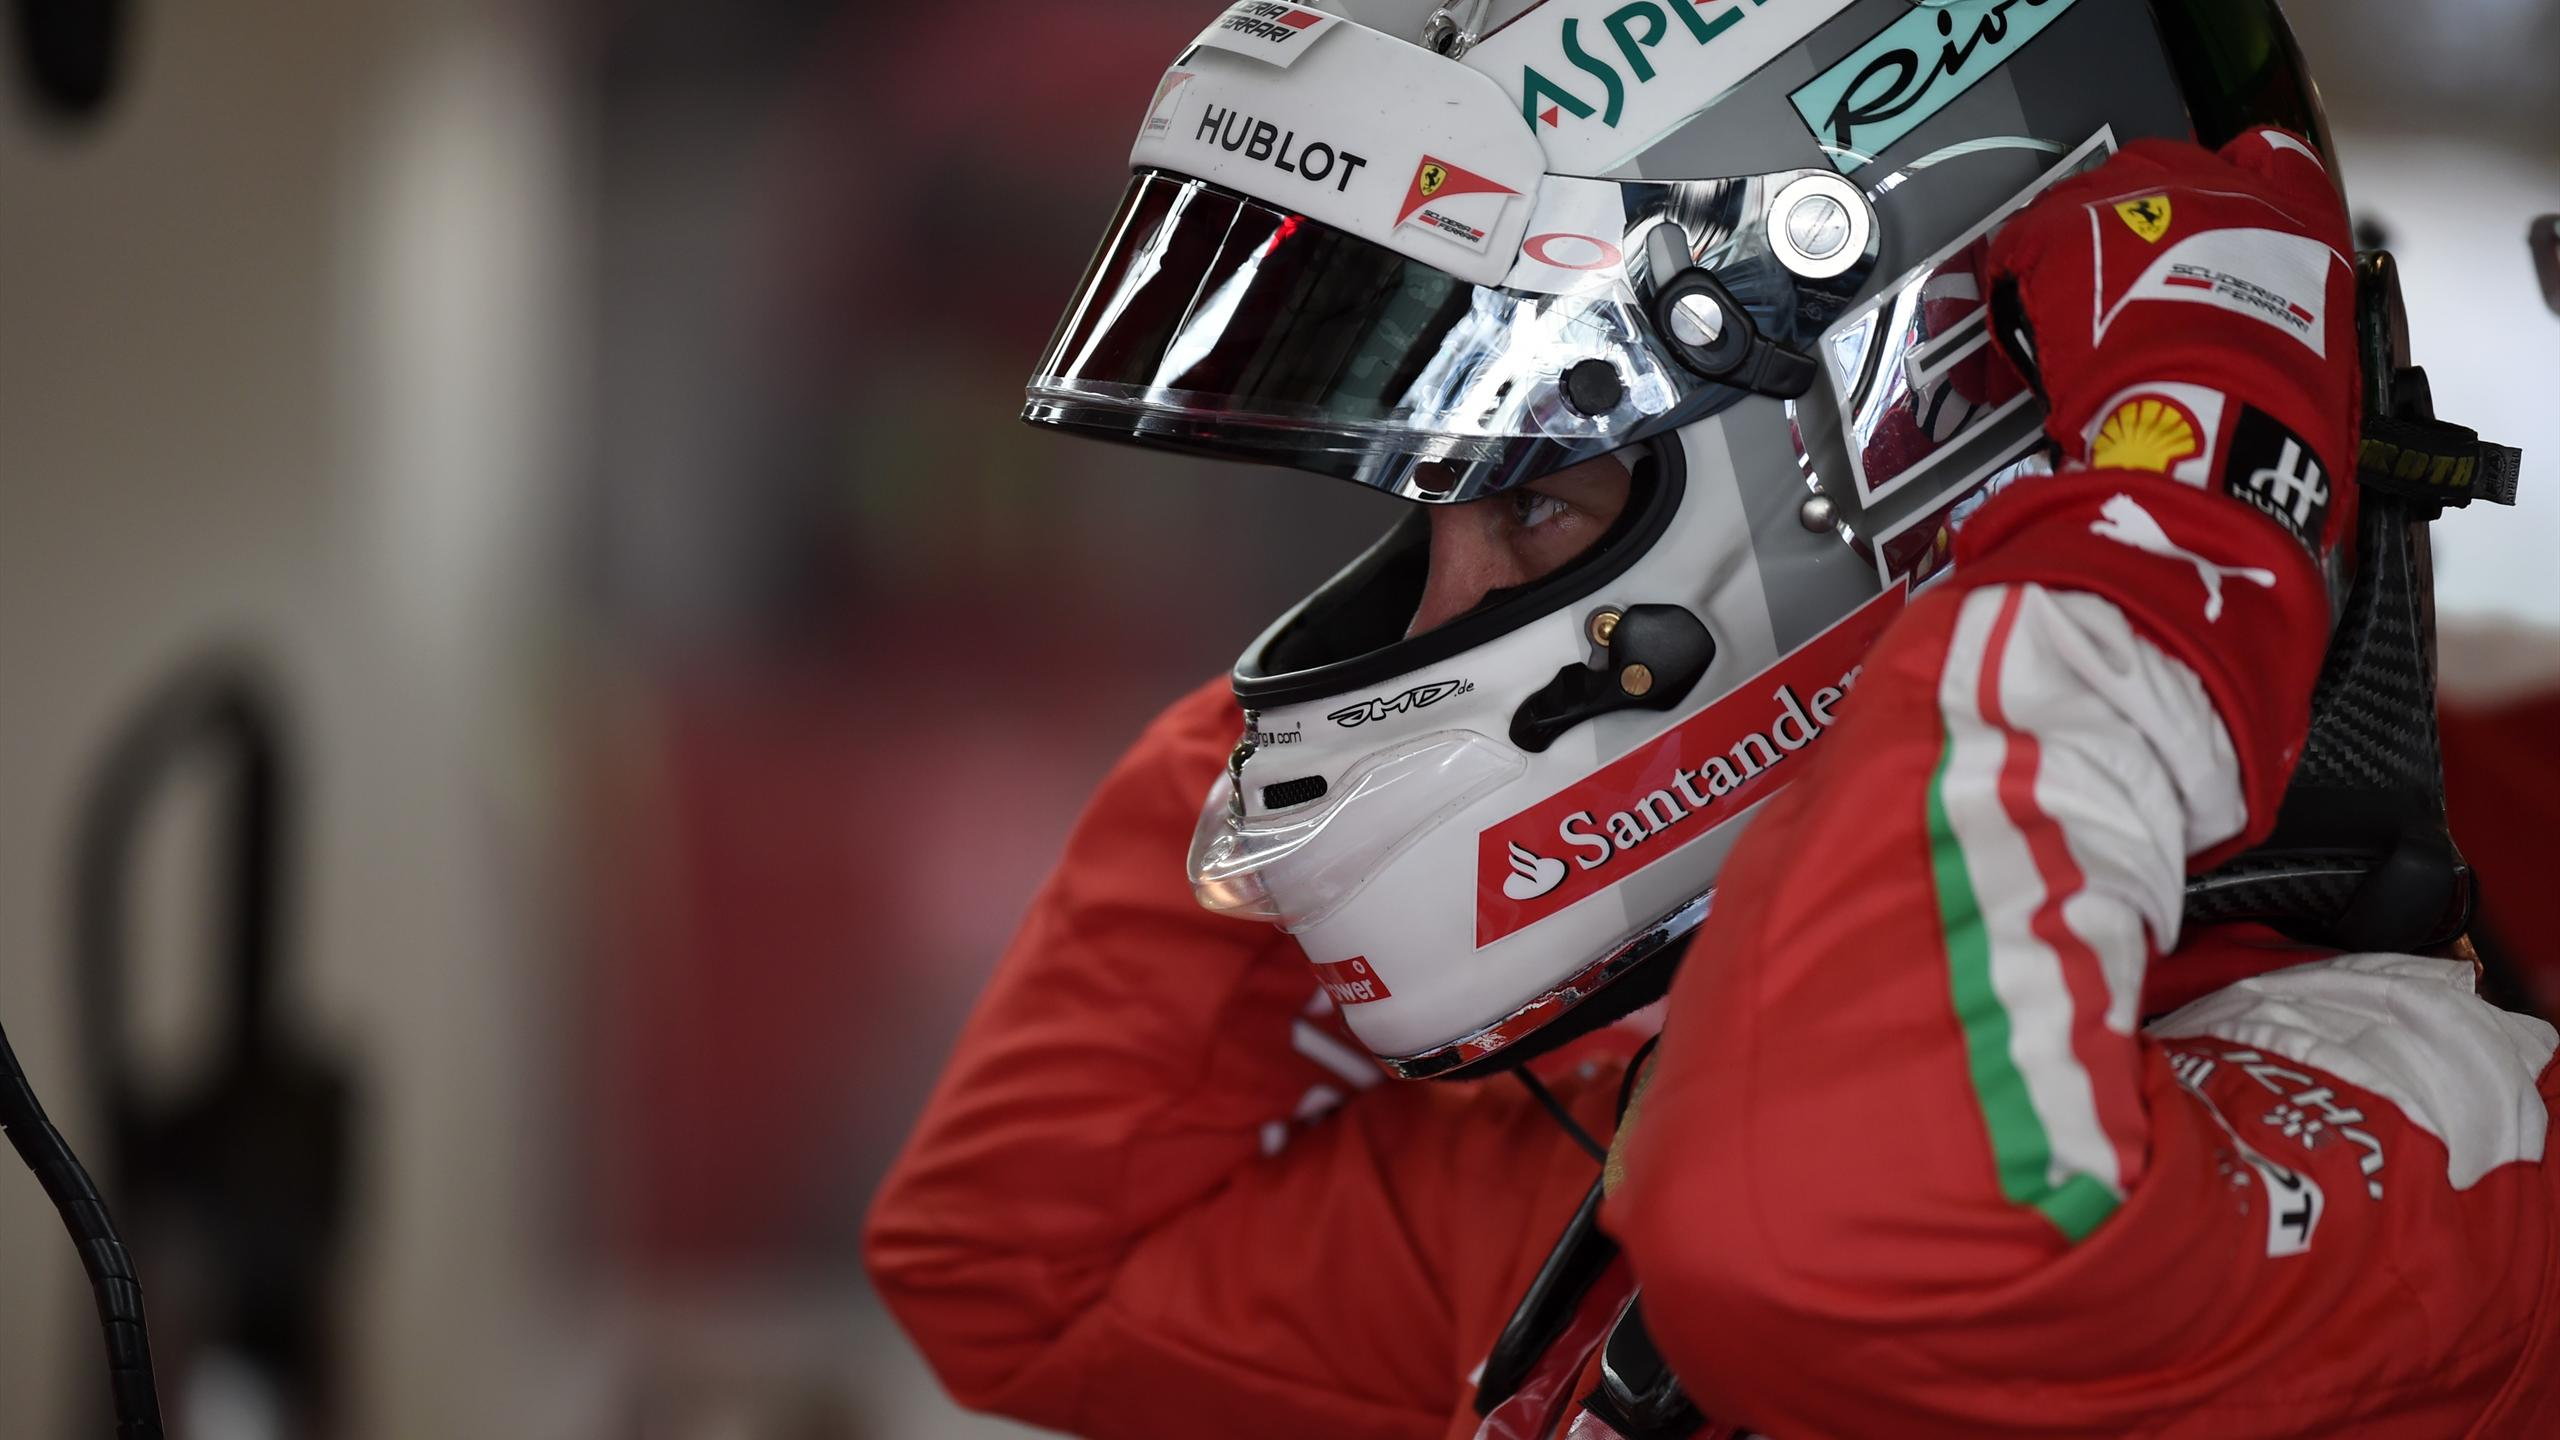 Scuderia Ferrari's German driver Sebastian Vettel stands the pits during the third practice session as part of the Abu Dhabi Formula One Grand Prix